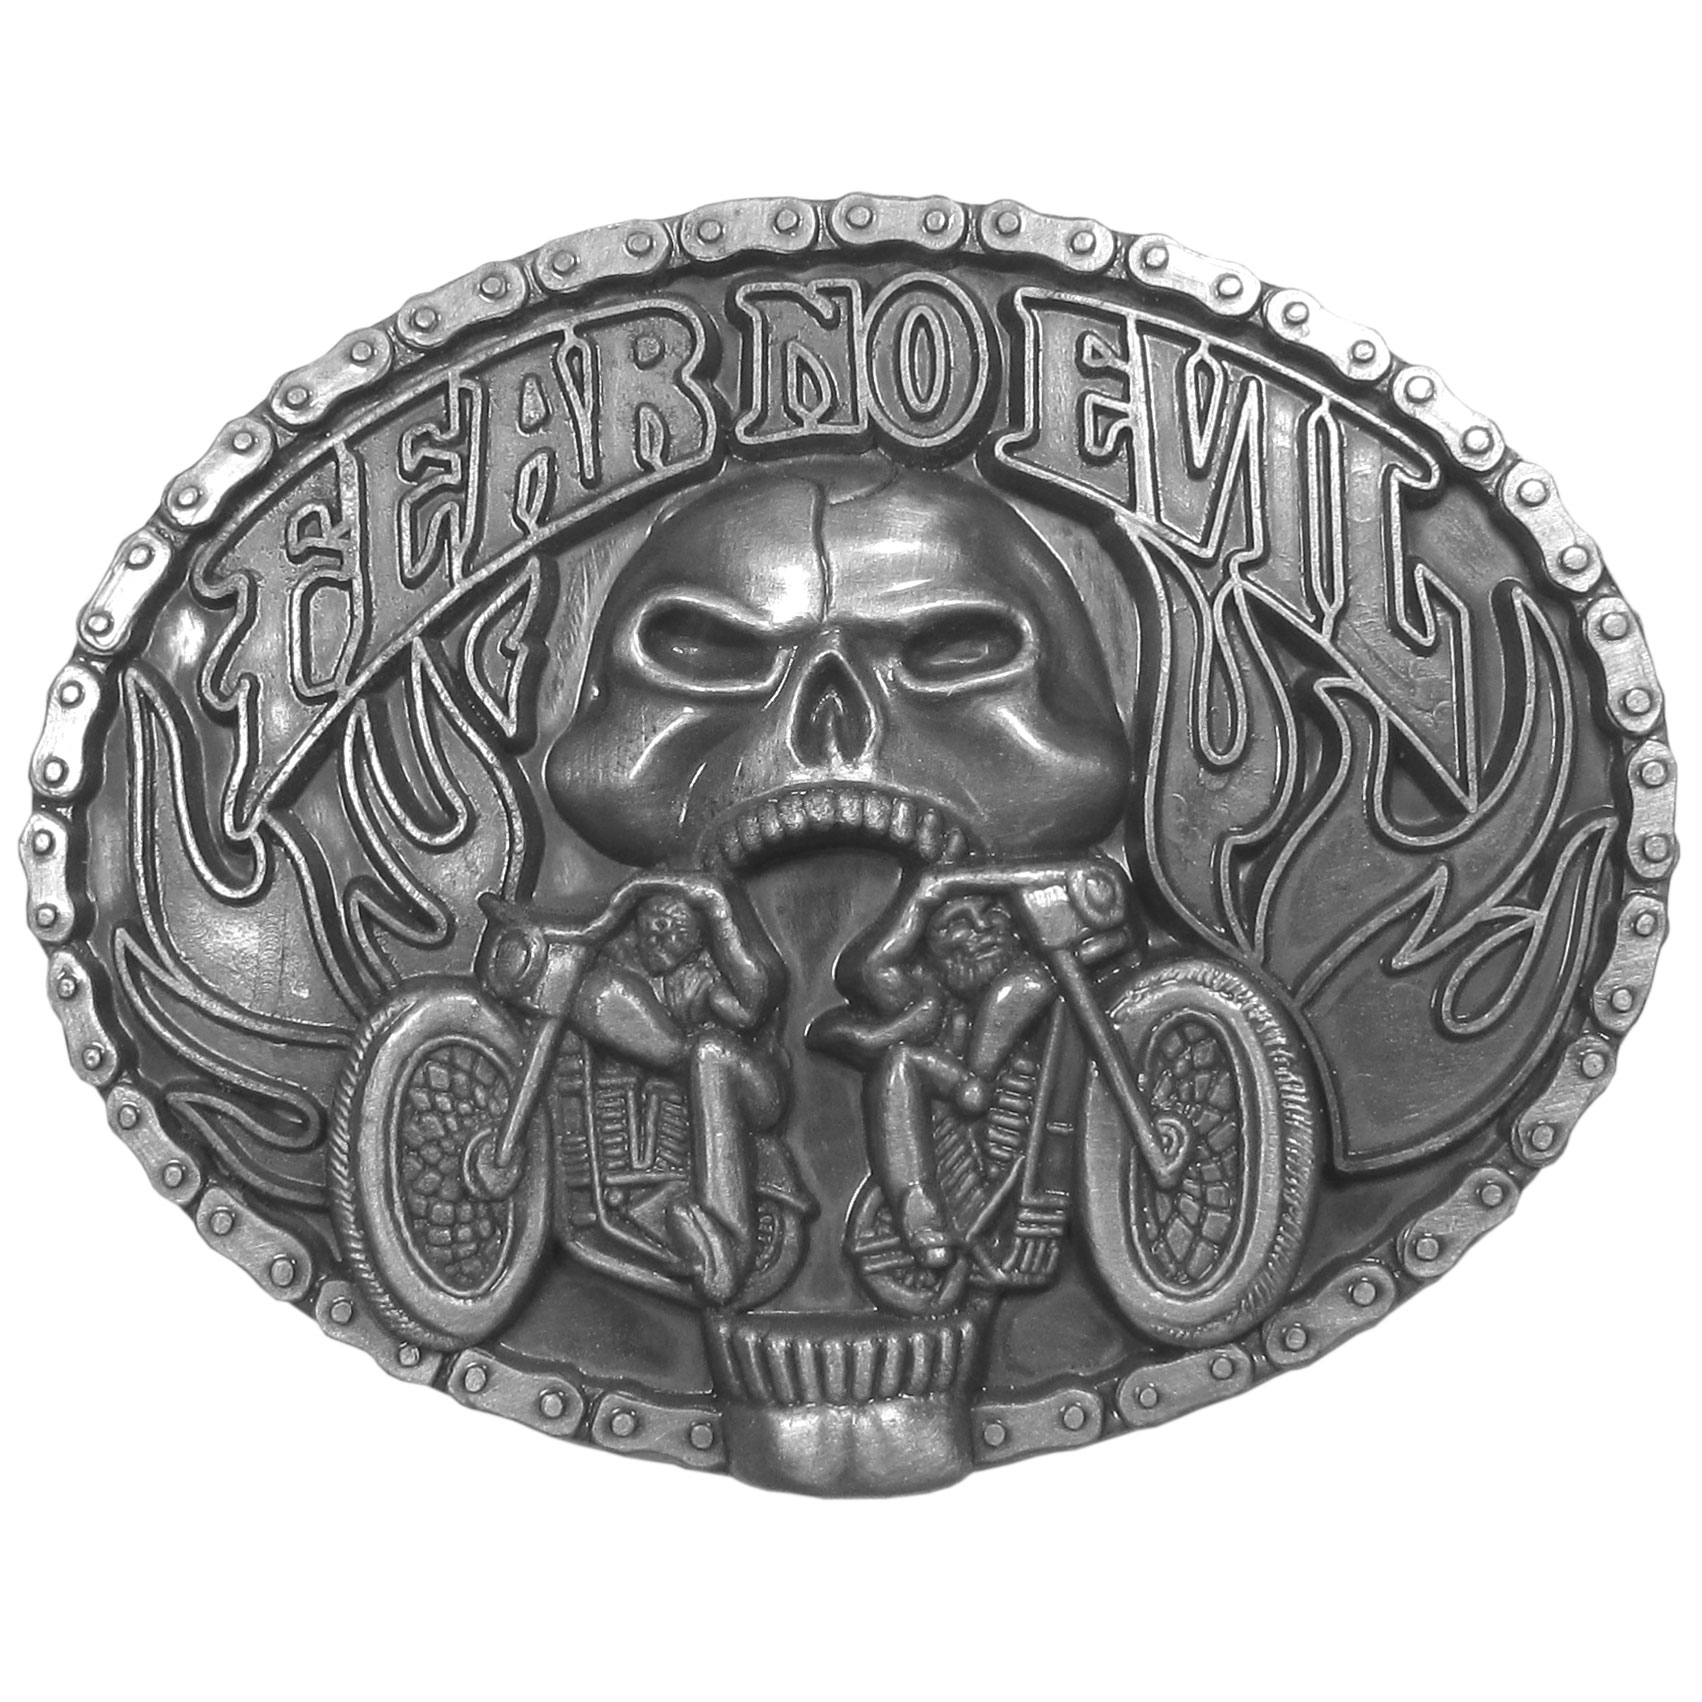 "Fear No Evil Antiqued Belt Buckle - ""Fear No Evil"" belt buckle features two motorcycles coming out of a skull surrounded by flames. This exquistely carved buckle is made of fully cast metal with a standard bale that fits up to 2"""" belts."""